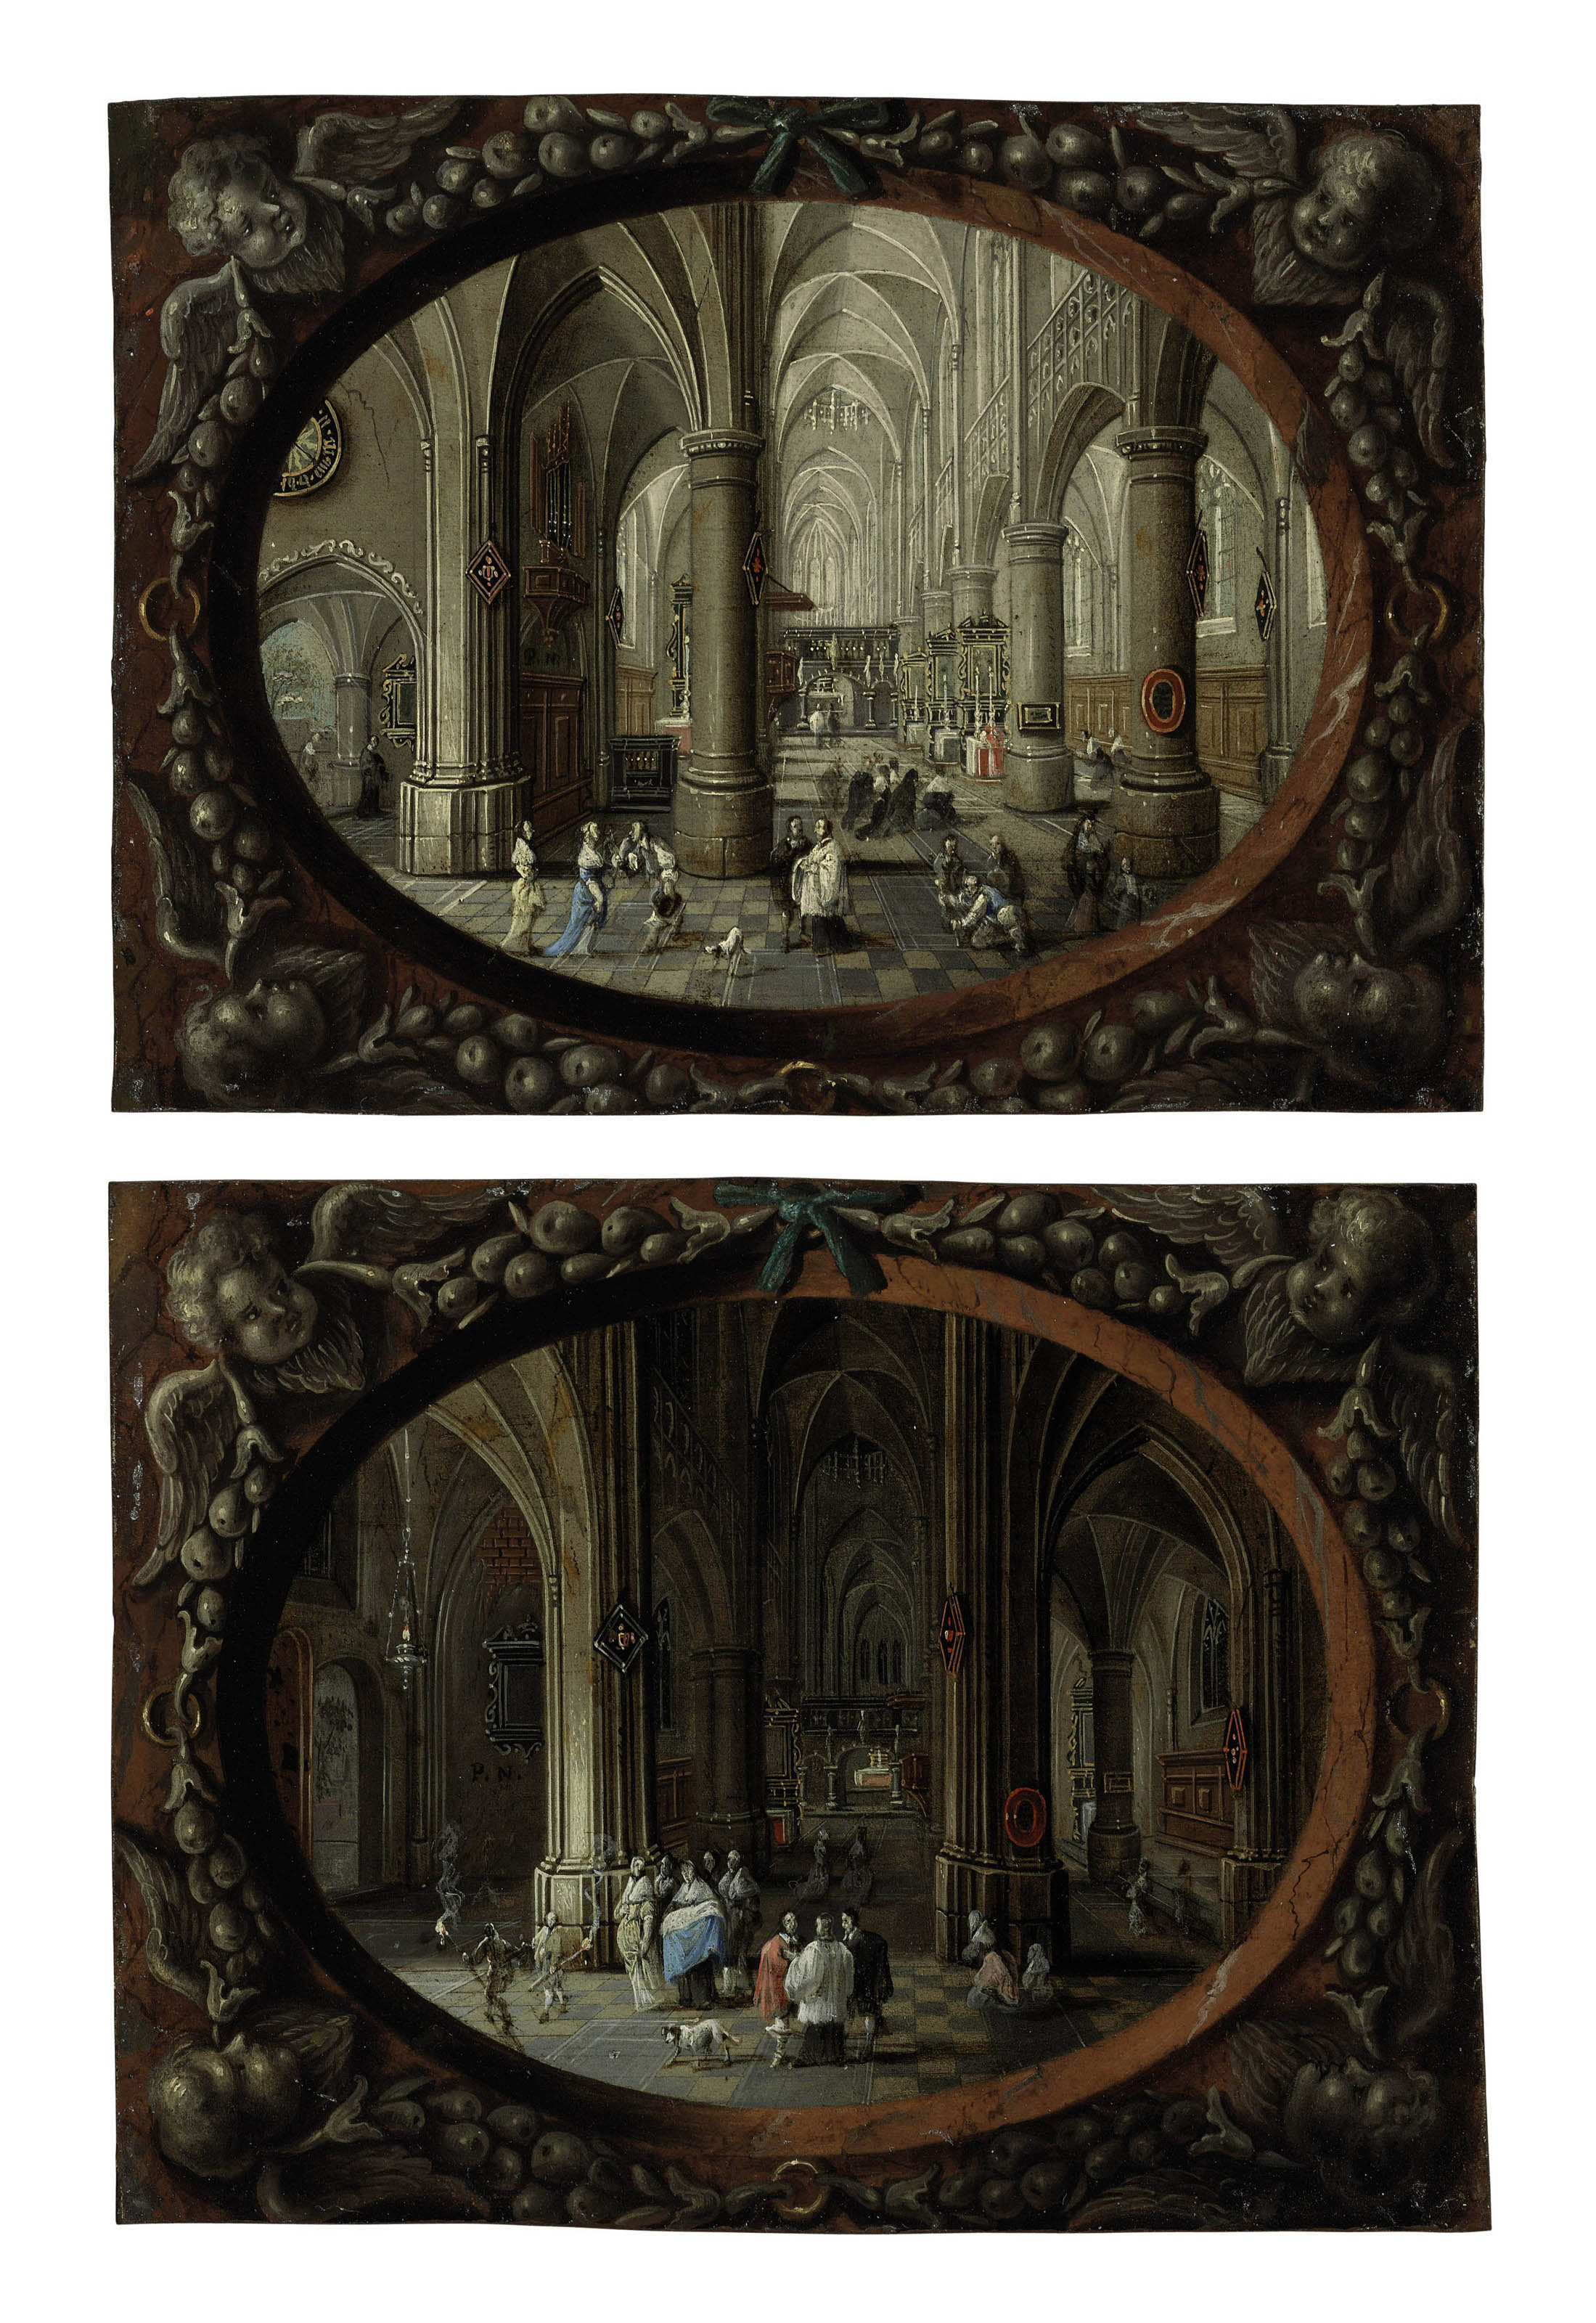 Interior of a Gothic church by day; and Interior of a Gothic church by night